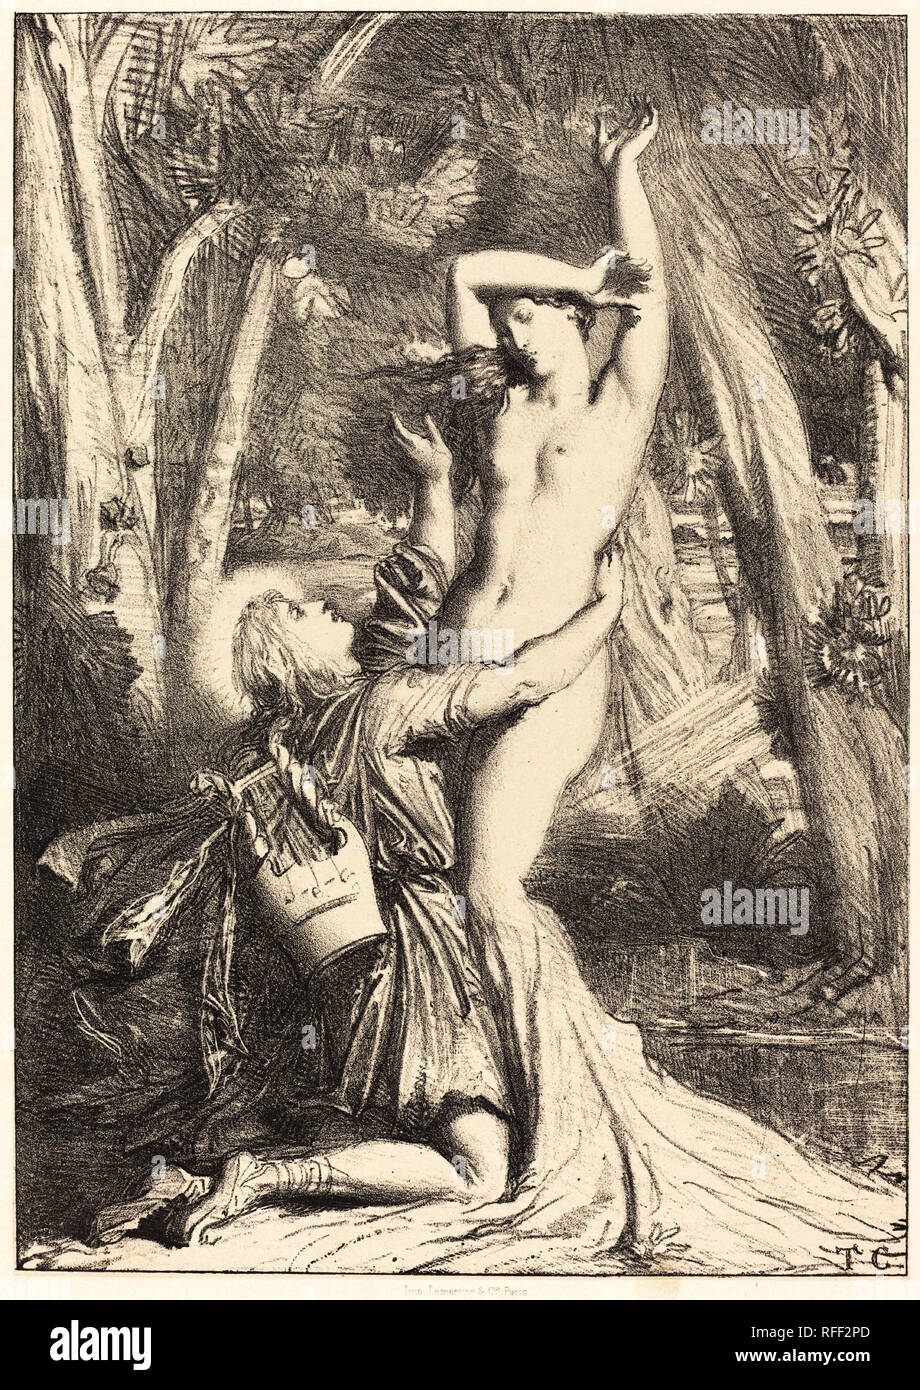 Apollon et Daphne. Dated: 1844. Medium: lithograph. Museum: National Gallery of Art, Washington DC. Author: THEODORE CHASSERIAU. - Stock Image